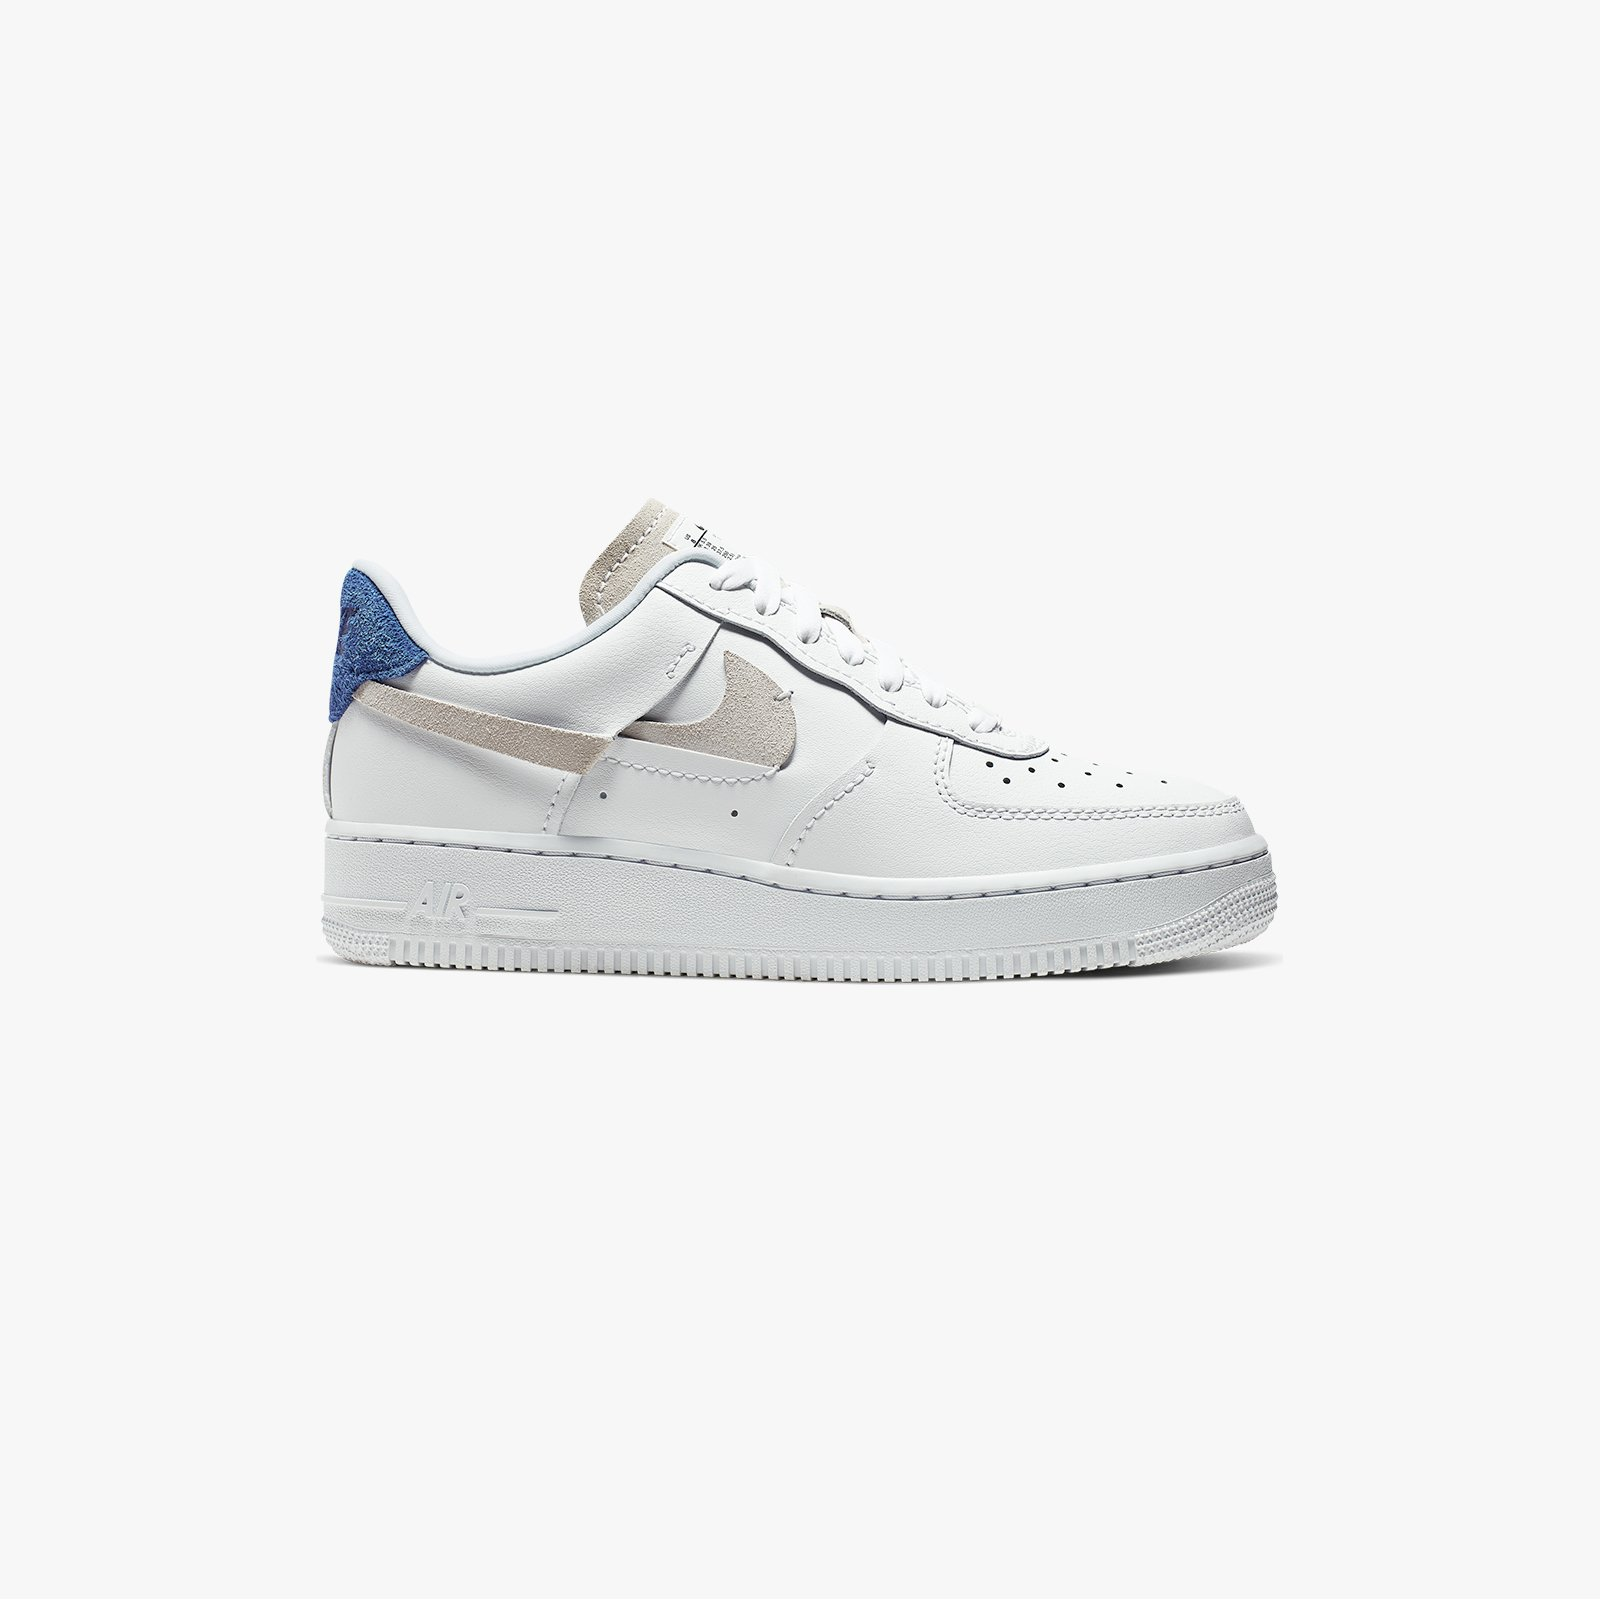 Nike Wmns Air Force 1 07 Lux - 898889-103 - Sneakersnstuff ...